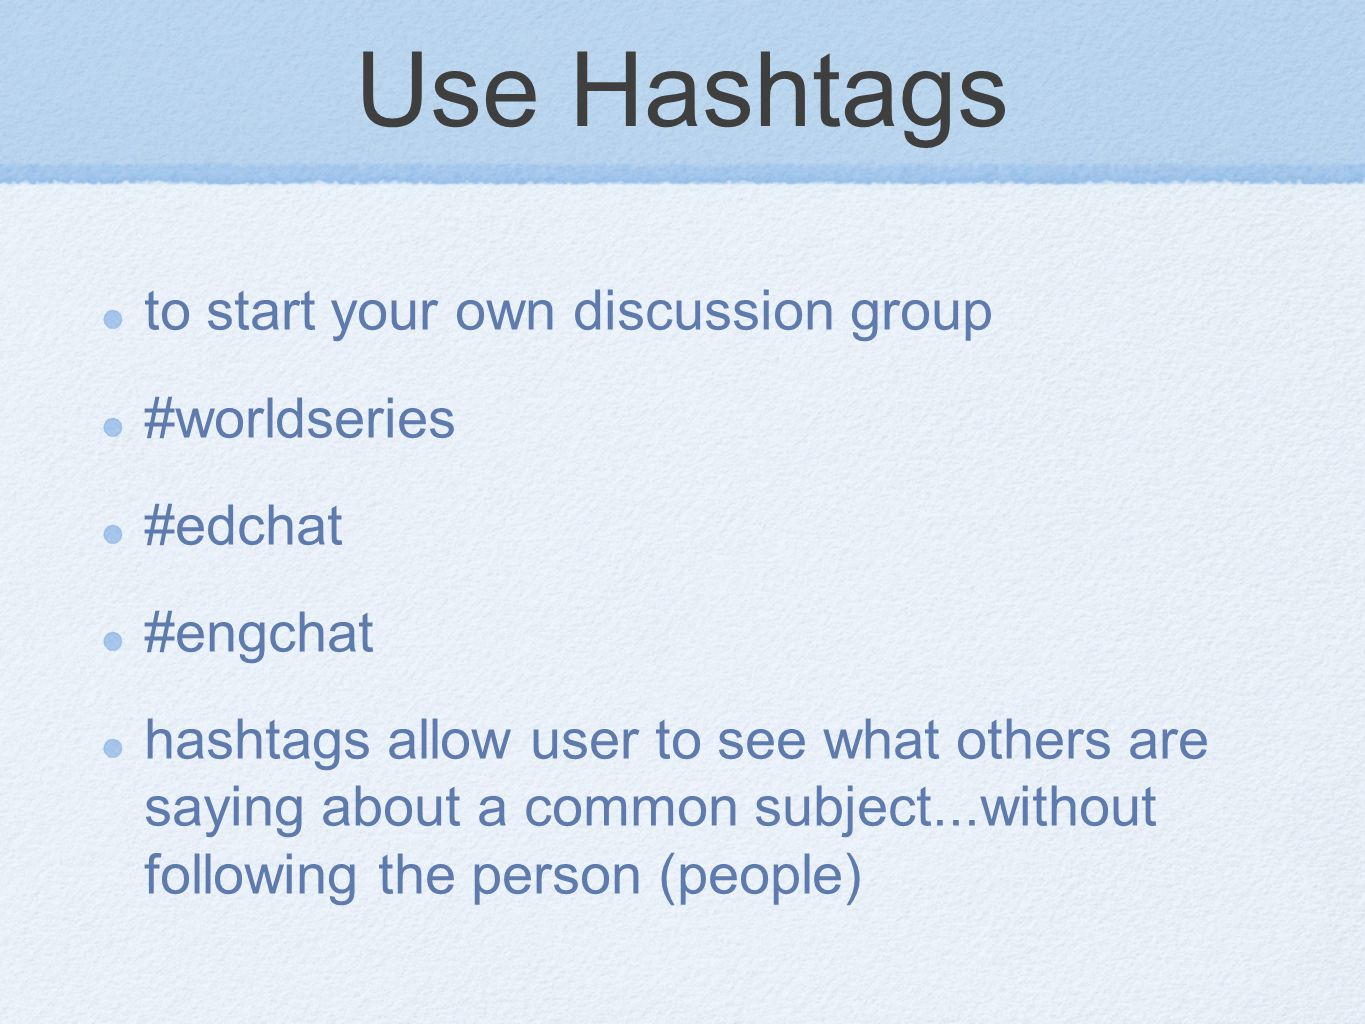 Use Hashtags to start your own discussion group #worldseries #edchat #engchat hashtags allow user to see what others are saying about a common subject...without following the person (people)